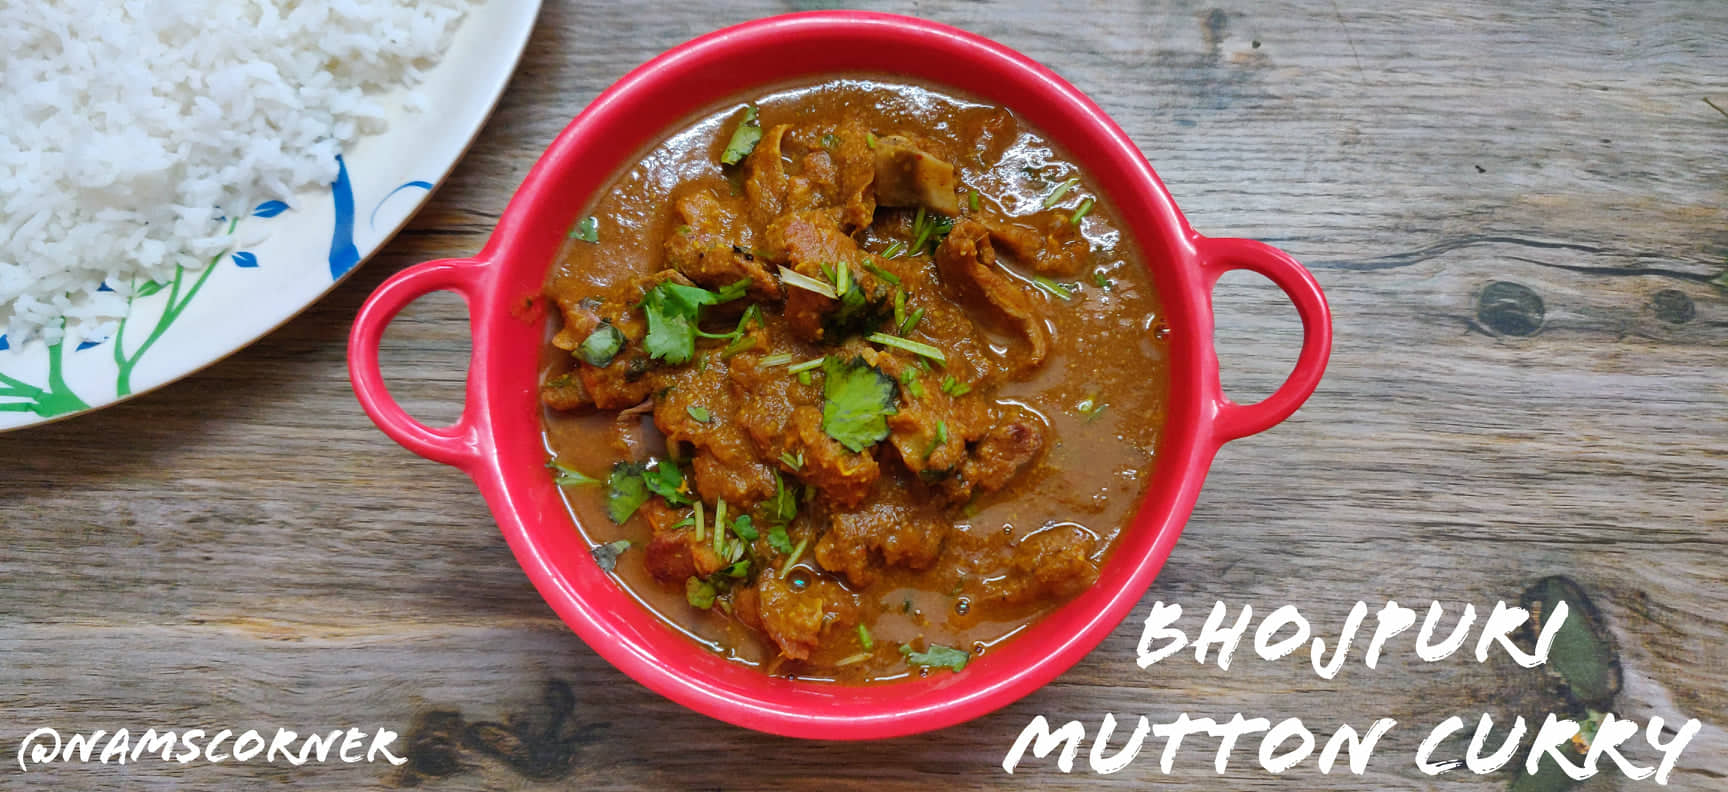 Bhojpuri Mutton Curry | Uttar Pradesh Style Mutton Curry